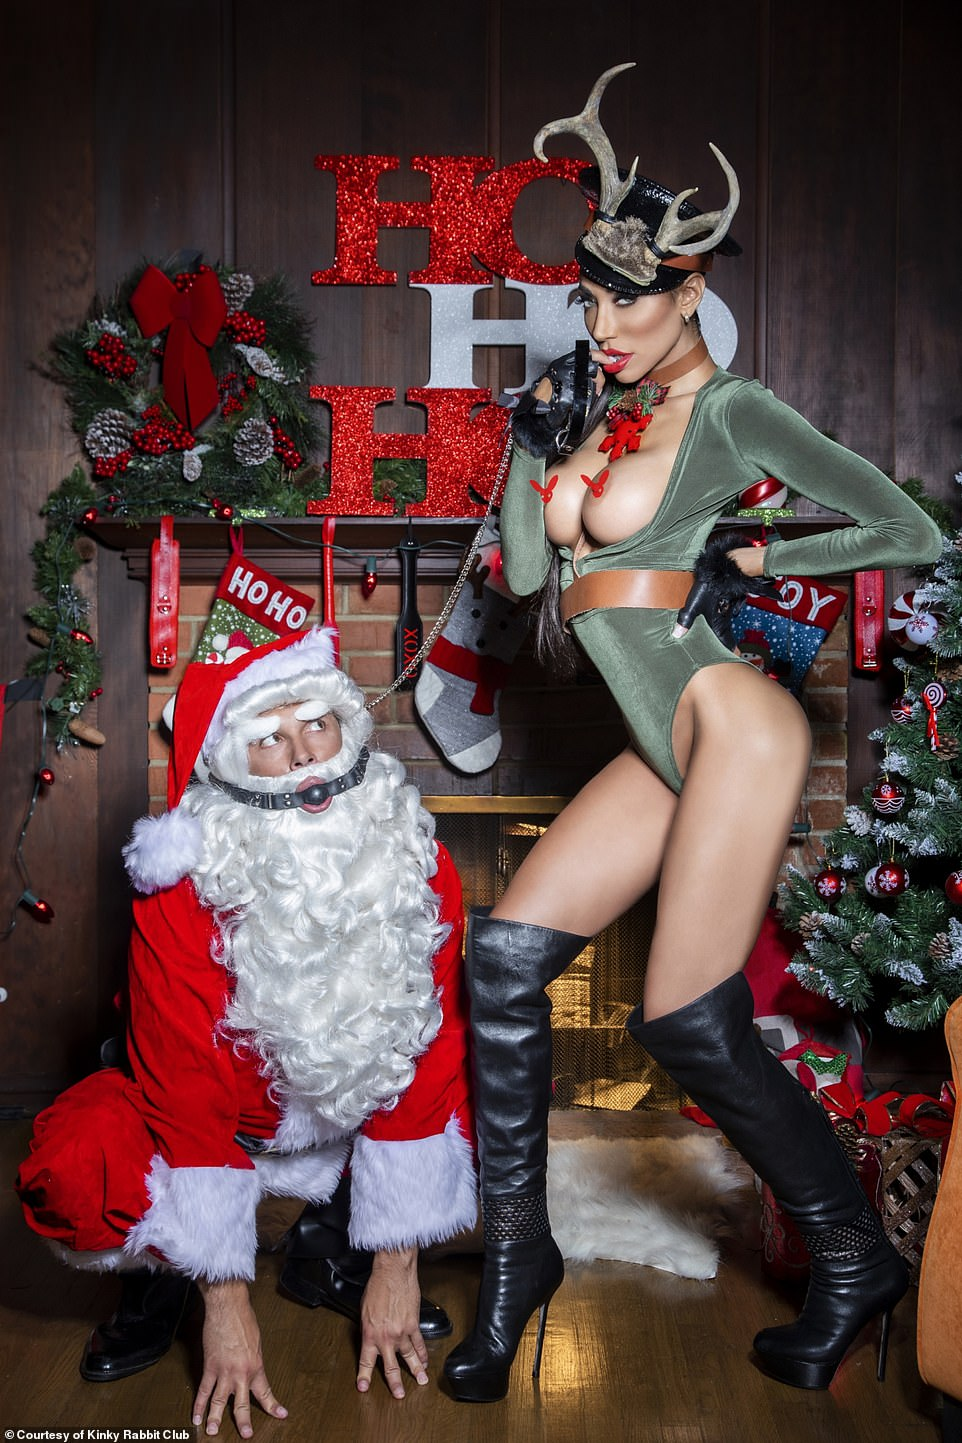 A naughty reindeer is pictured holding Santa Claus on a chain in this twisted world where guests are free to explore their darkest fantasies